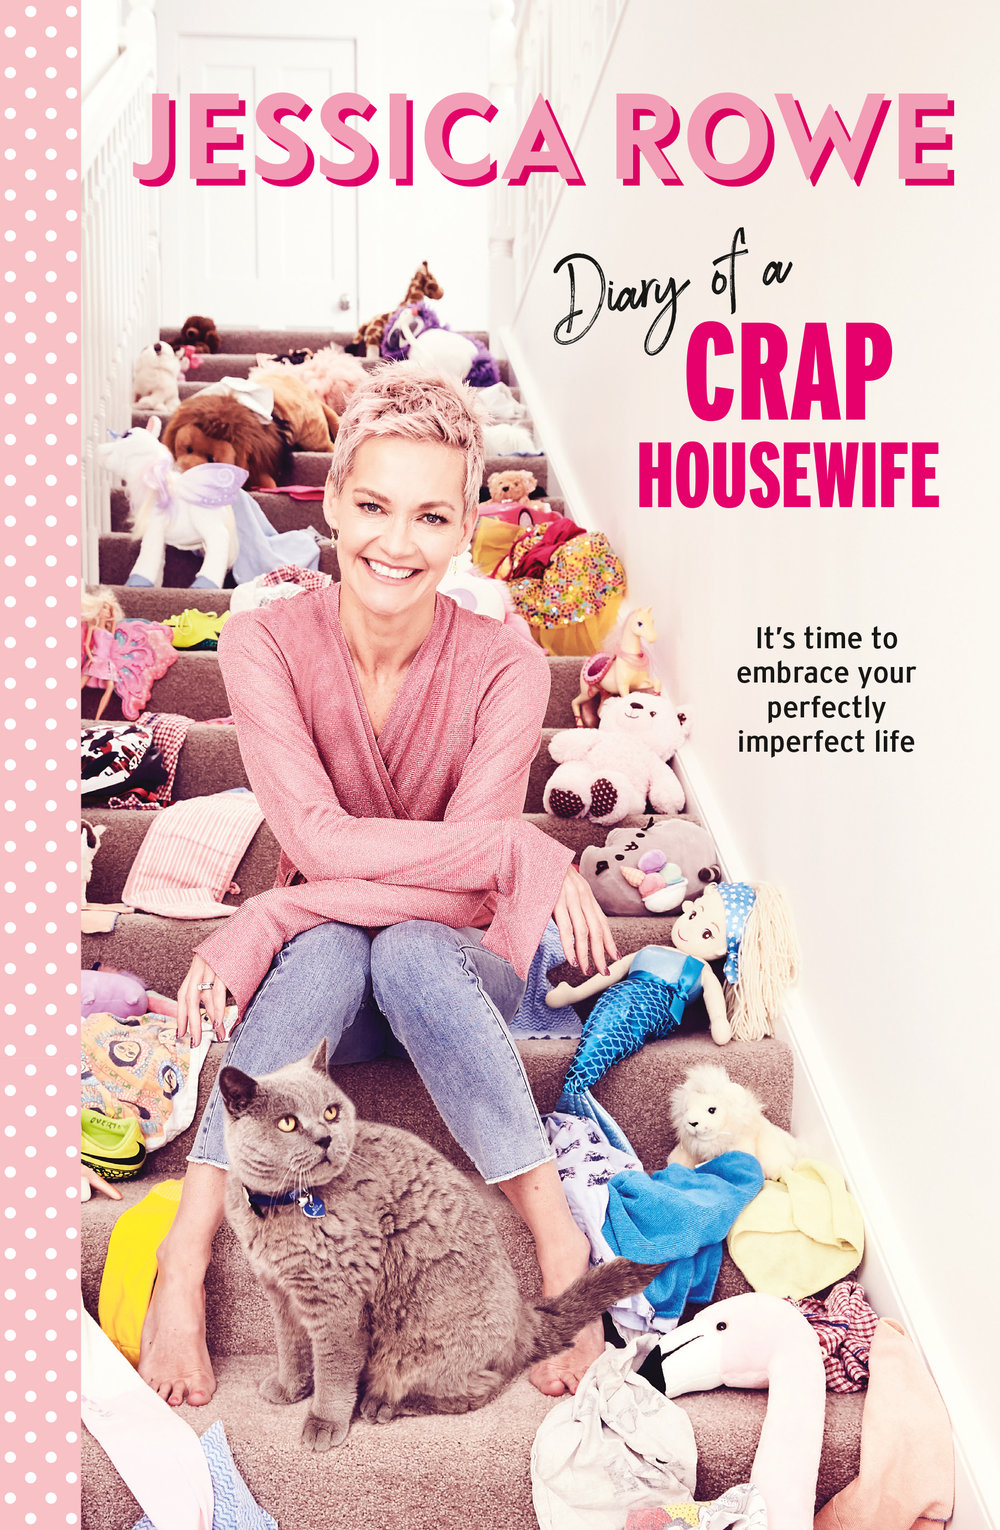 """Diary of a Crap Housewife - It's time to embrace your perfectly imperfect life.Why not cut the crap, take the pressure off and admit to the moments, days, weeks and months when the wheels do fall off? This crap housewife calls to unite all mothers who, like Jessica, sometimes feel they are not perfect.In this fabulous, funny, down-to-earth book, Diary of a Crap Housewife, Jessica Rowe writes honestly about her talent (or lack thereof) for cooking, about what's really important when it comes to mothering and family, and about her many and varied views, musings and commonsense advice on other #craphousewife matters.Being a crap housewife is a badge Jessica wears with pride, and it's a title she invites other women to embrace. The idea of crap lies in the real-life messes, hiccups, disasters and bad meals that many of us dish up and deal with every day. This mum is tired of the photos of perfectly packed school lunches, posts about gourmet family dinners eaten together over the table, and tales of neat, tidy and obedient children with smoothly brushed hair.It's time to reset the bar. Make expectations realistic. Strive to be kind, loving, smart and funny. Perfection is not required.""""My book is all about being gentle on yourself. We put way too much pressure on ourselves to be perfect in all parts of our lives. That's impossible - and no fun! It's my rallying cry to women that you are good enough,"""" said Jess.Diary of a Crap Housewife is available in-store and online from 1st April 2019."""